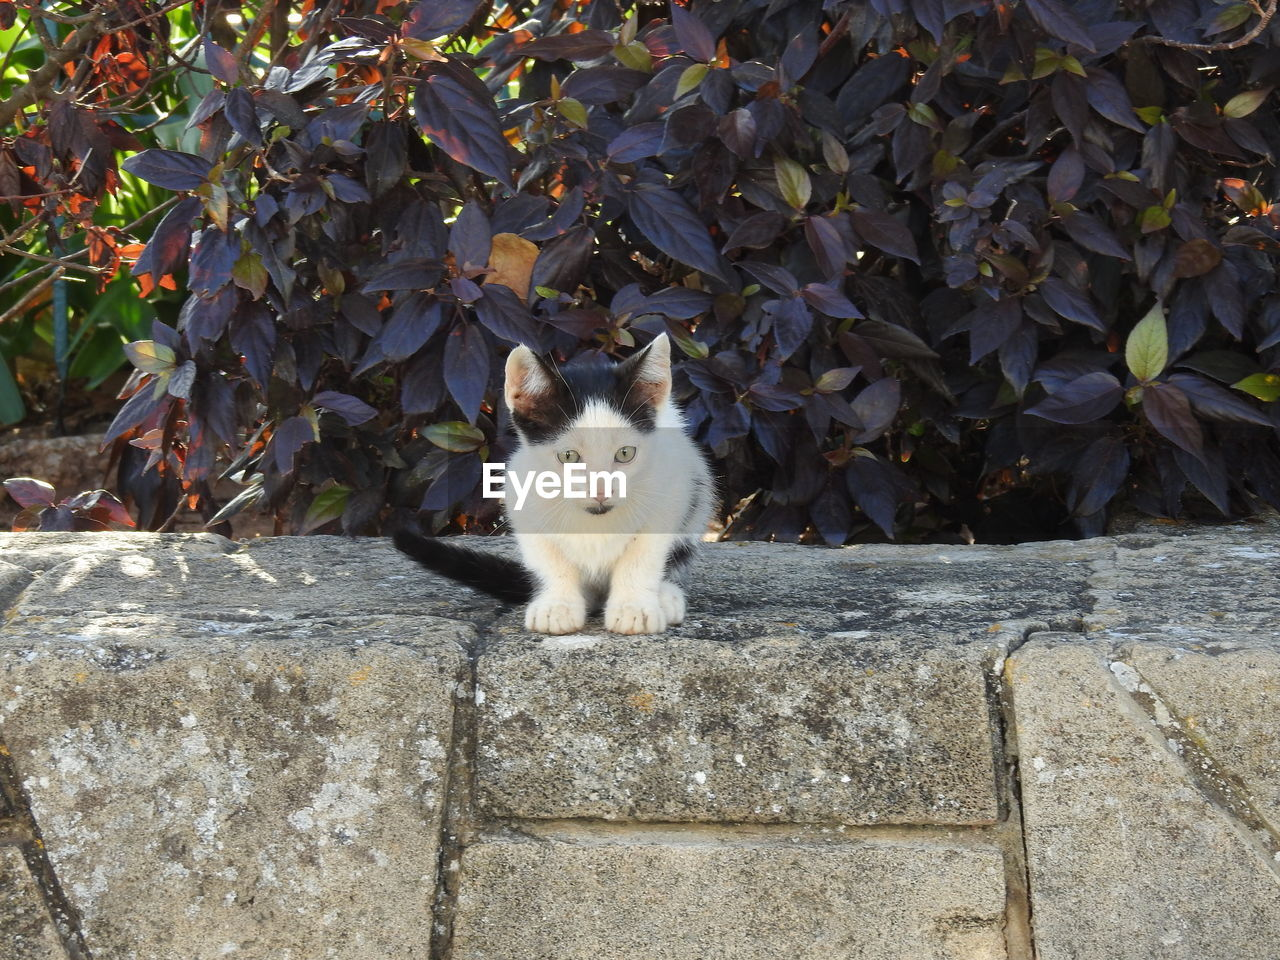 cat, domestic cat, one animal, animal themes, domestic, animal, feline, mammal, vertebrate, domestic animals, pets, portrait, looking at camera, nature, plant part, leaf, day, plant, no people, wall, outdoors, whisker, concrete